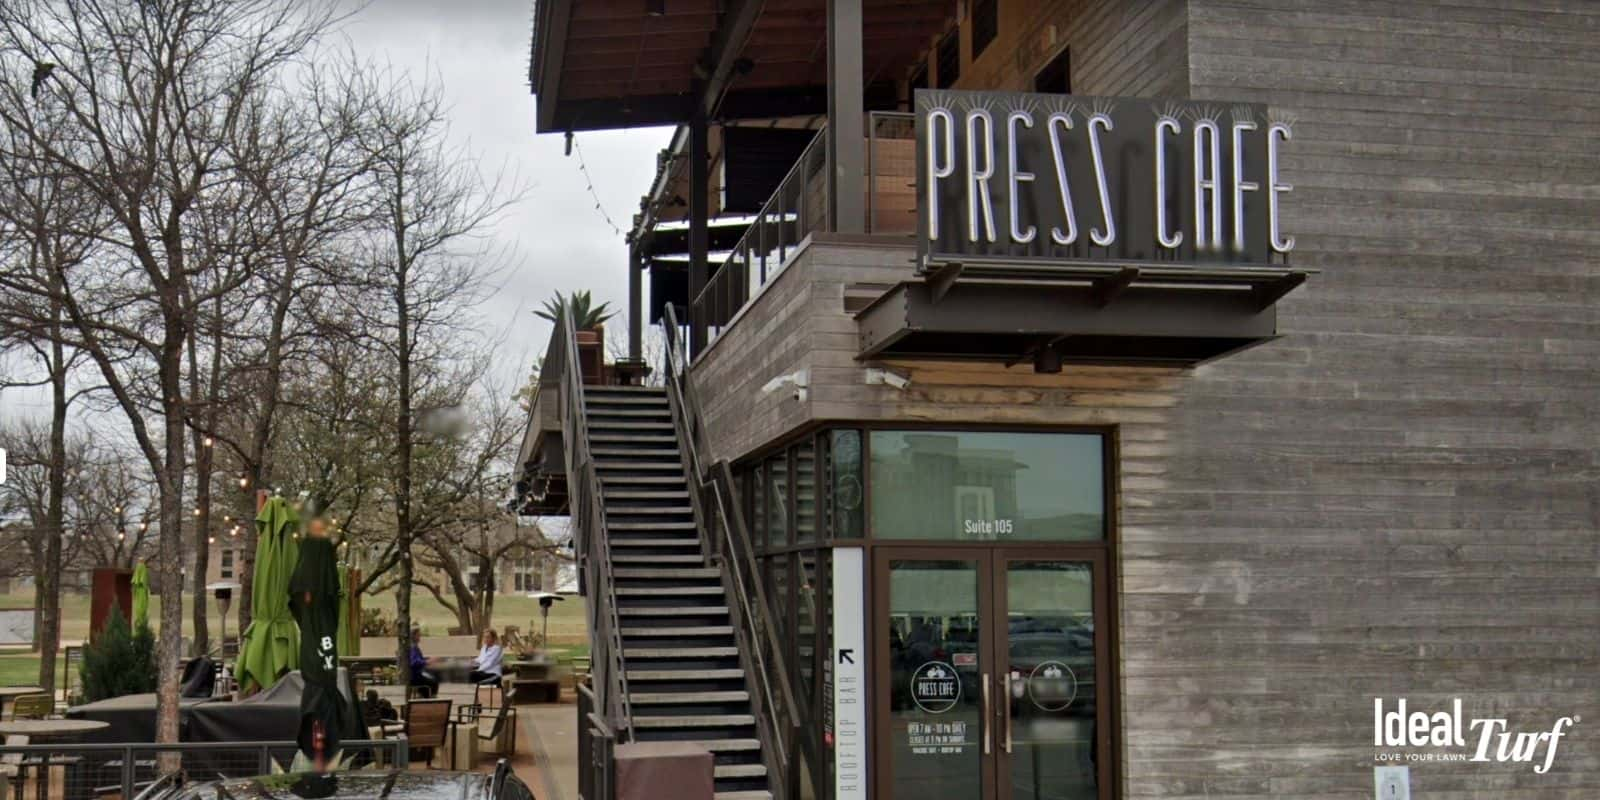 Front entrance and patio area of Press Cafe in Fort Worth, TX